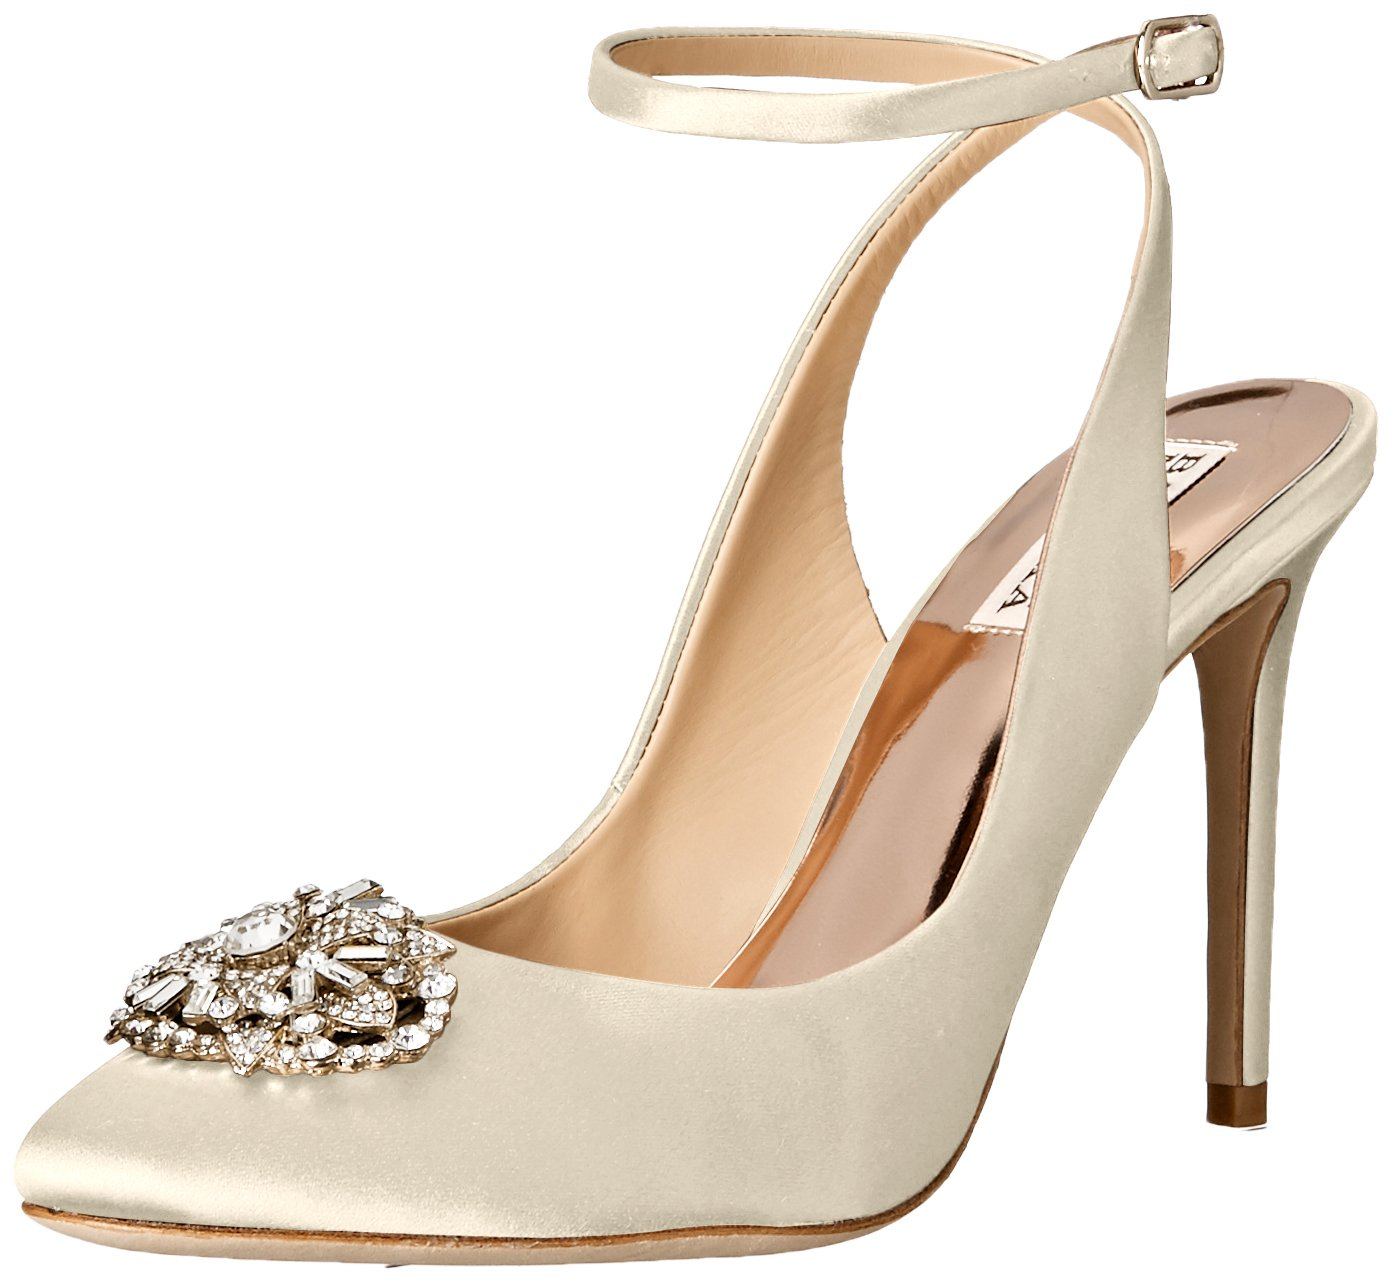 Badgley Mischka Women's Darwyn Dress Pump B01DVBU2QQ 6.5 B(M) US|Ivory